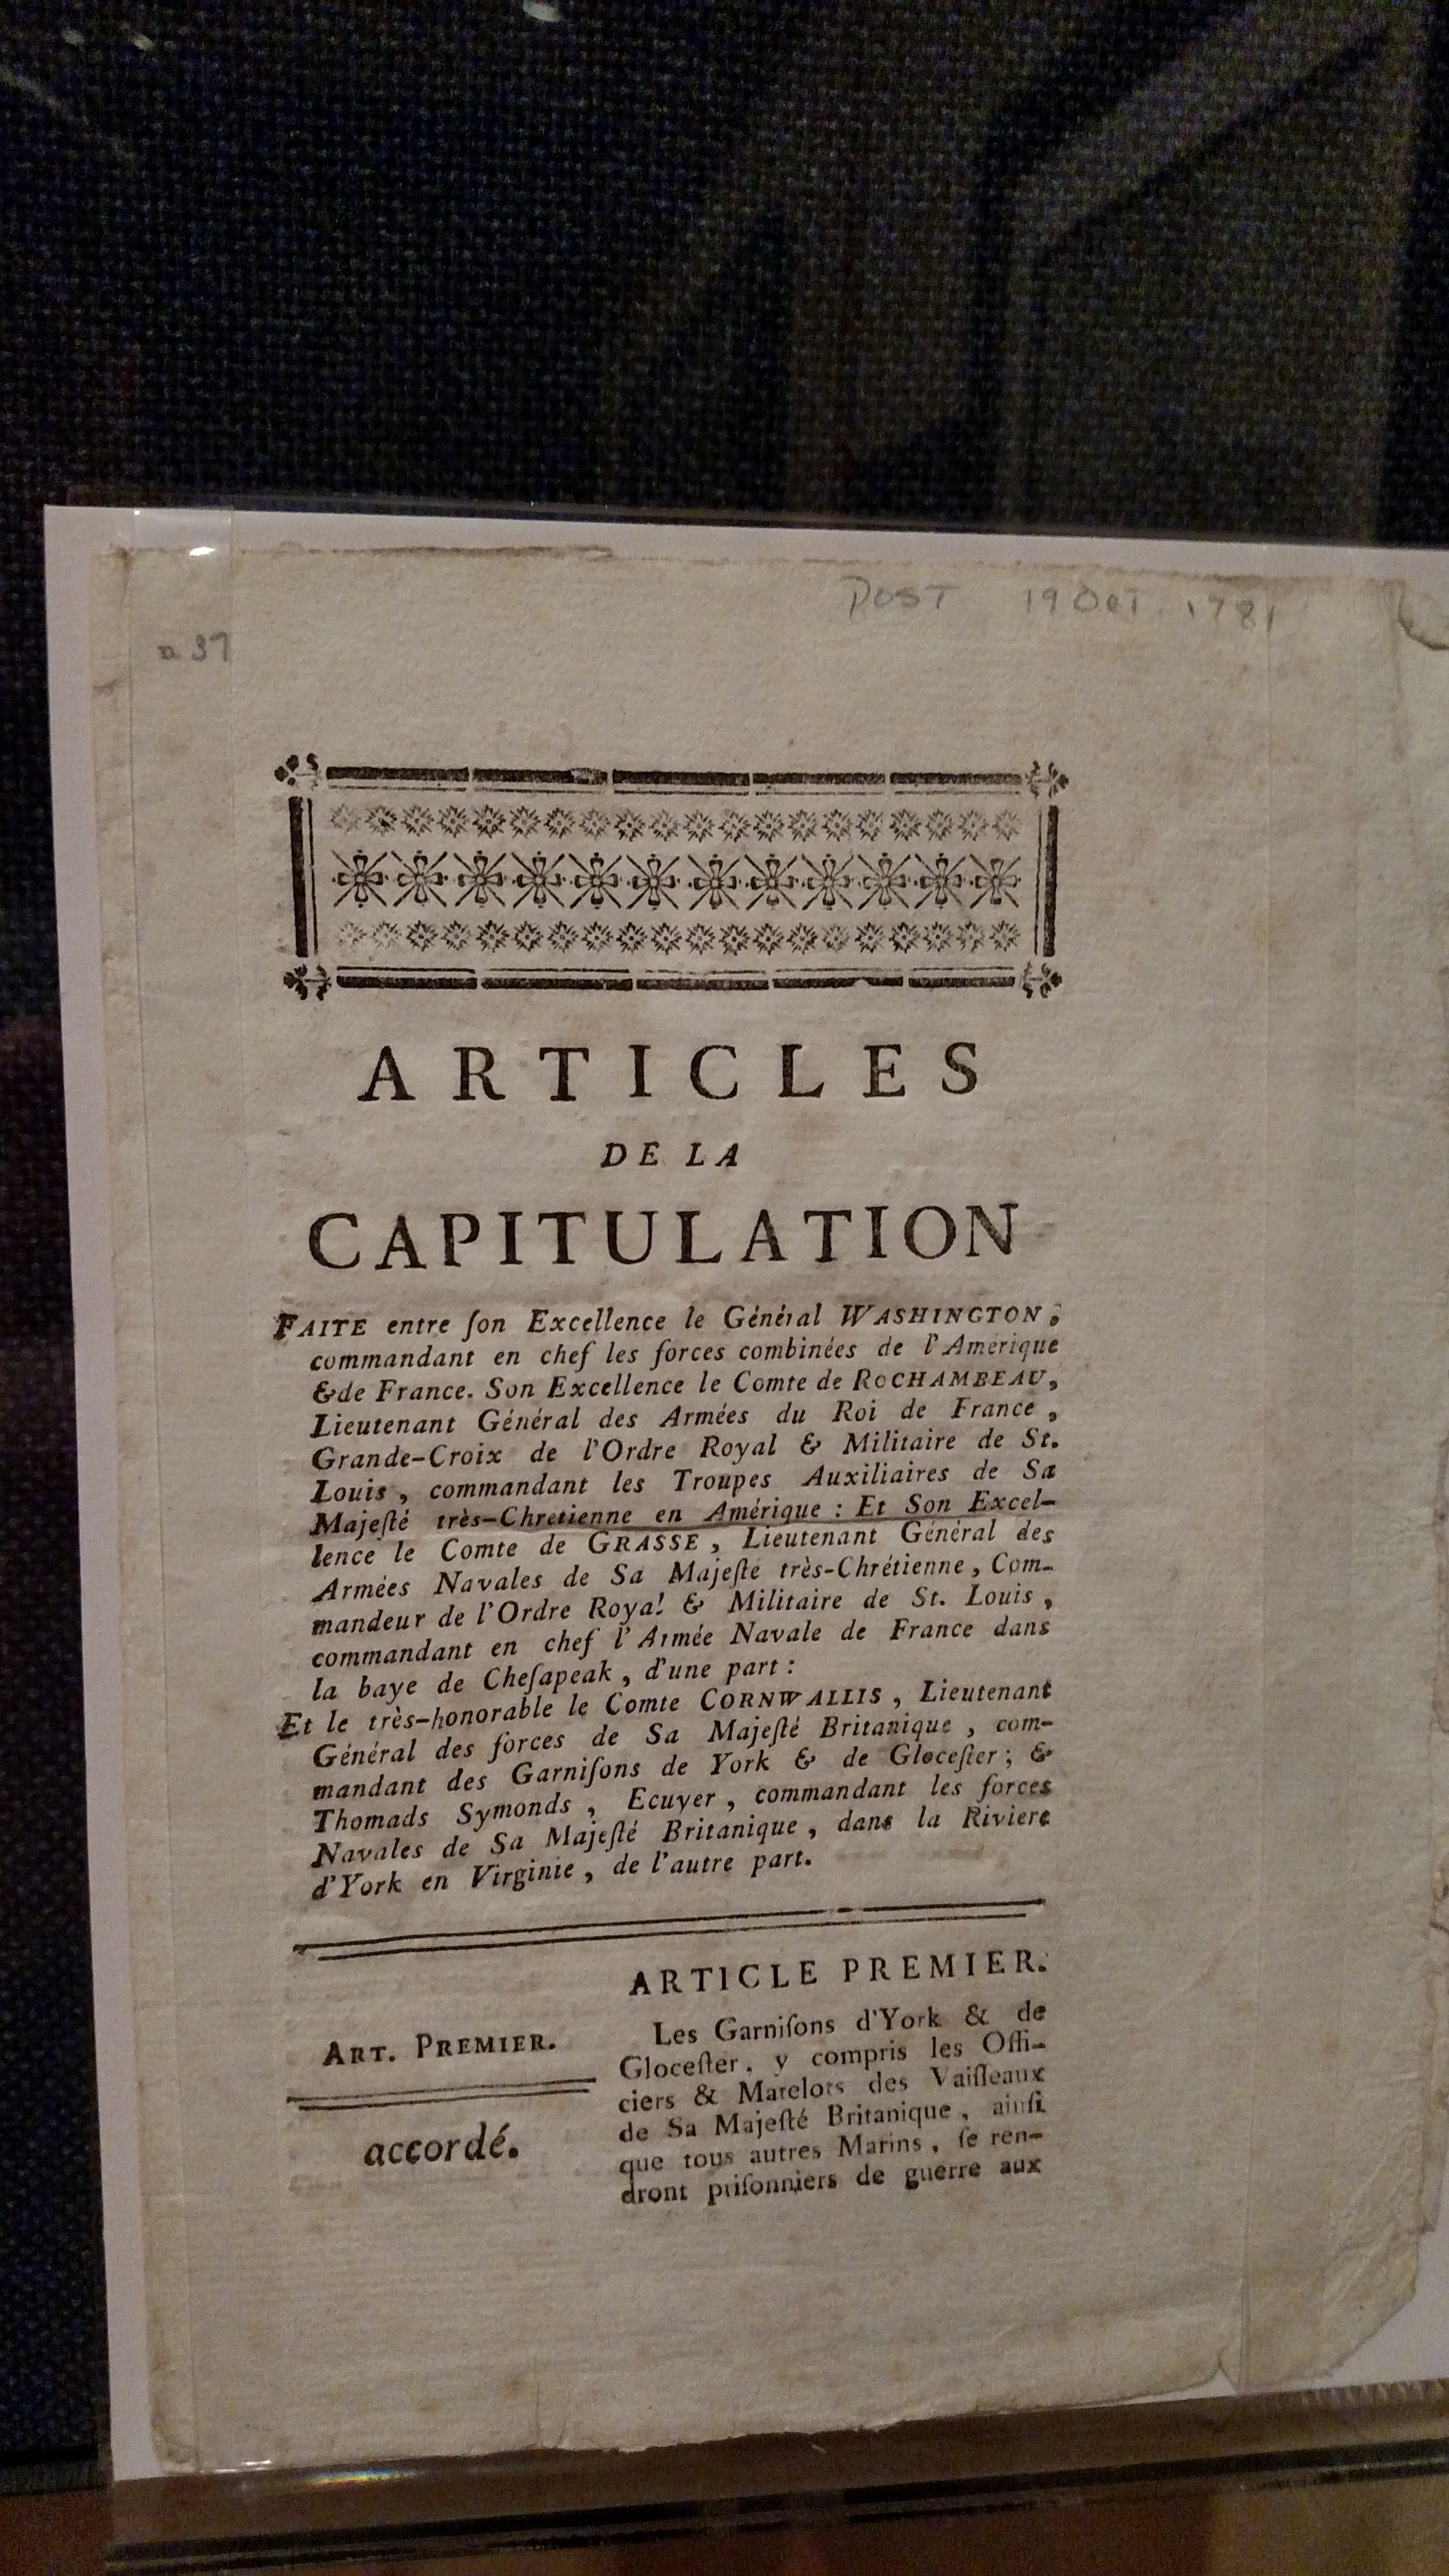 articles of capitulation Capitulation definition is - a set of terms or articles constituting an agreement  between governments how to use capitulation in a sentence.